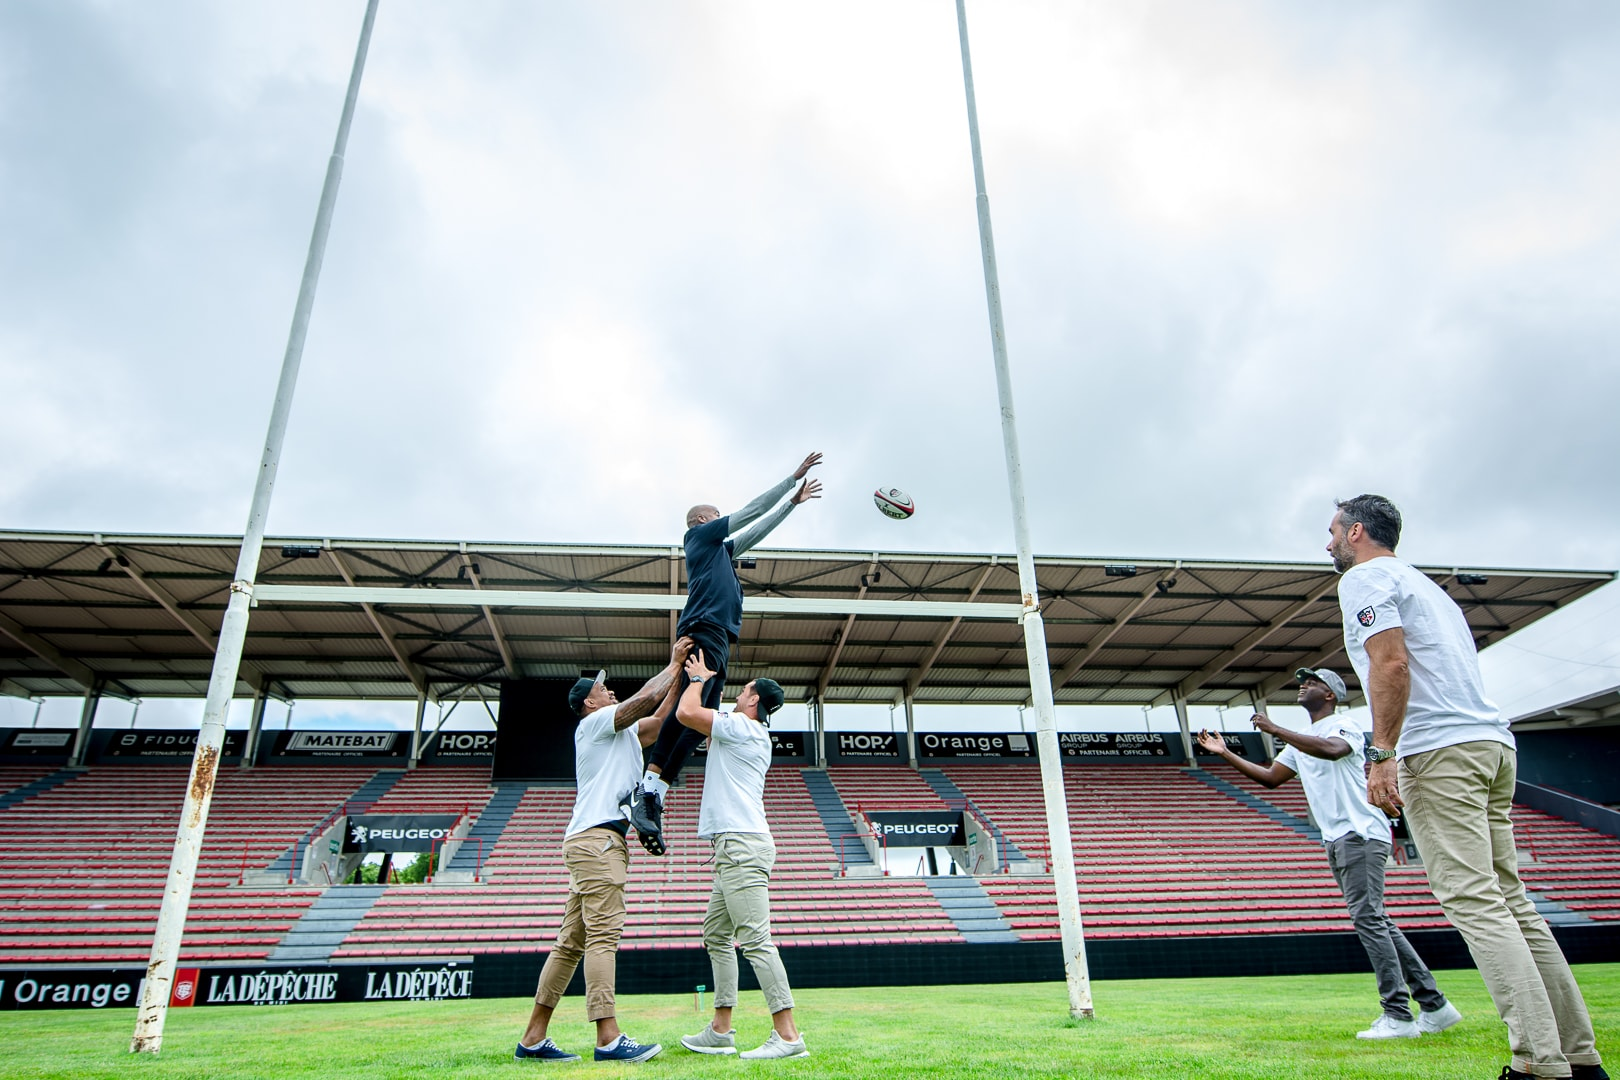 trezors-photography-photographe-professionnel-toulouse-31-sport-lifestyle-rugby_stade-toulousain